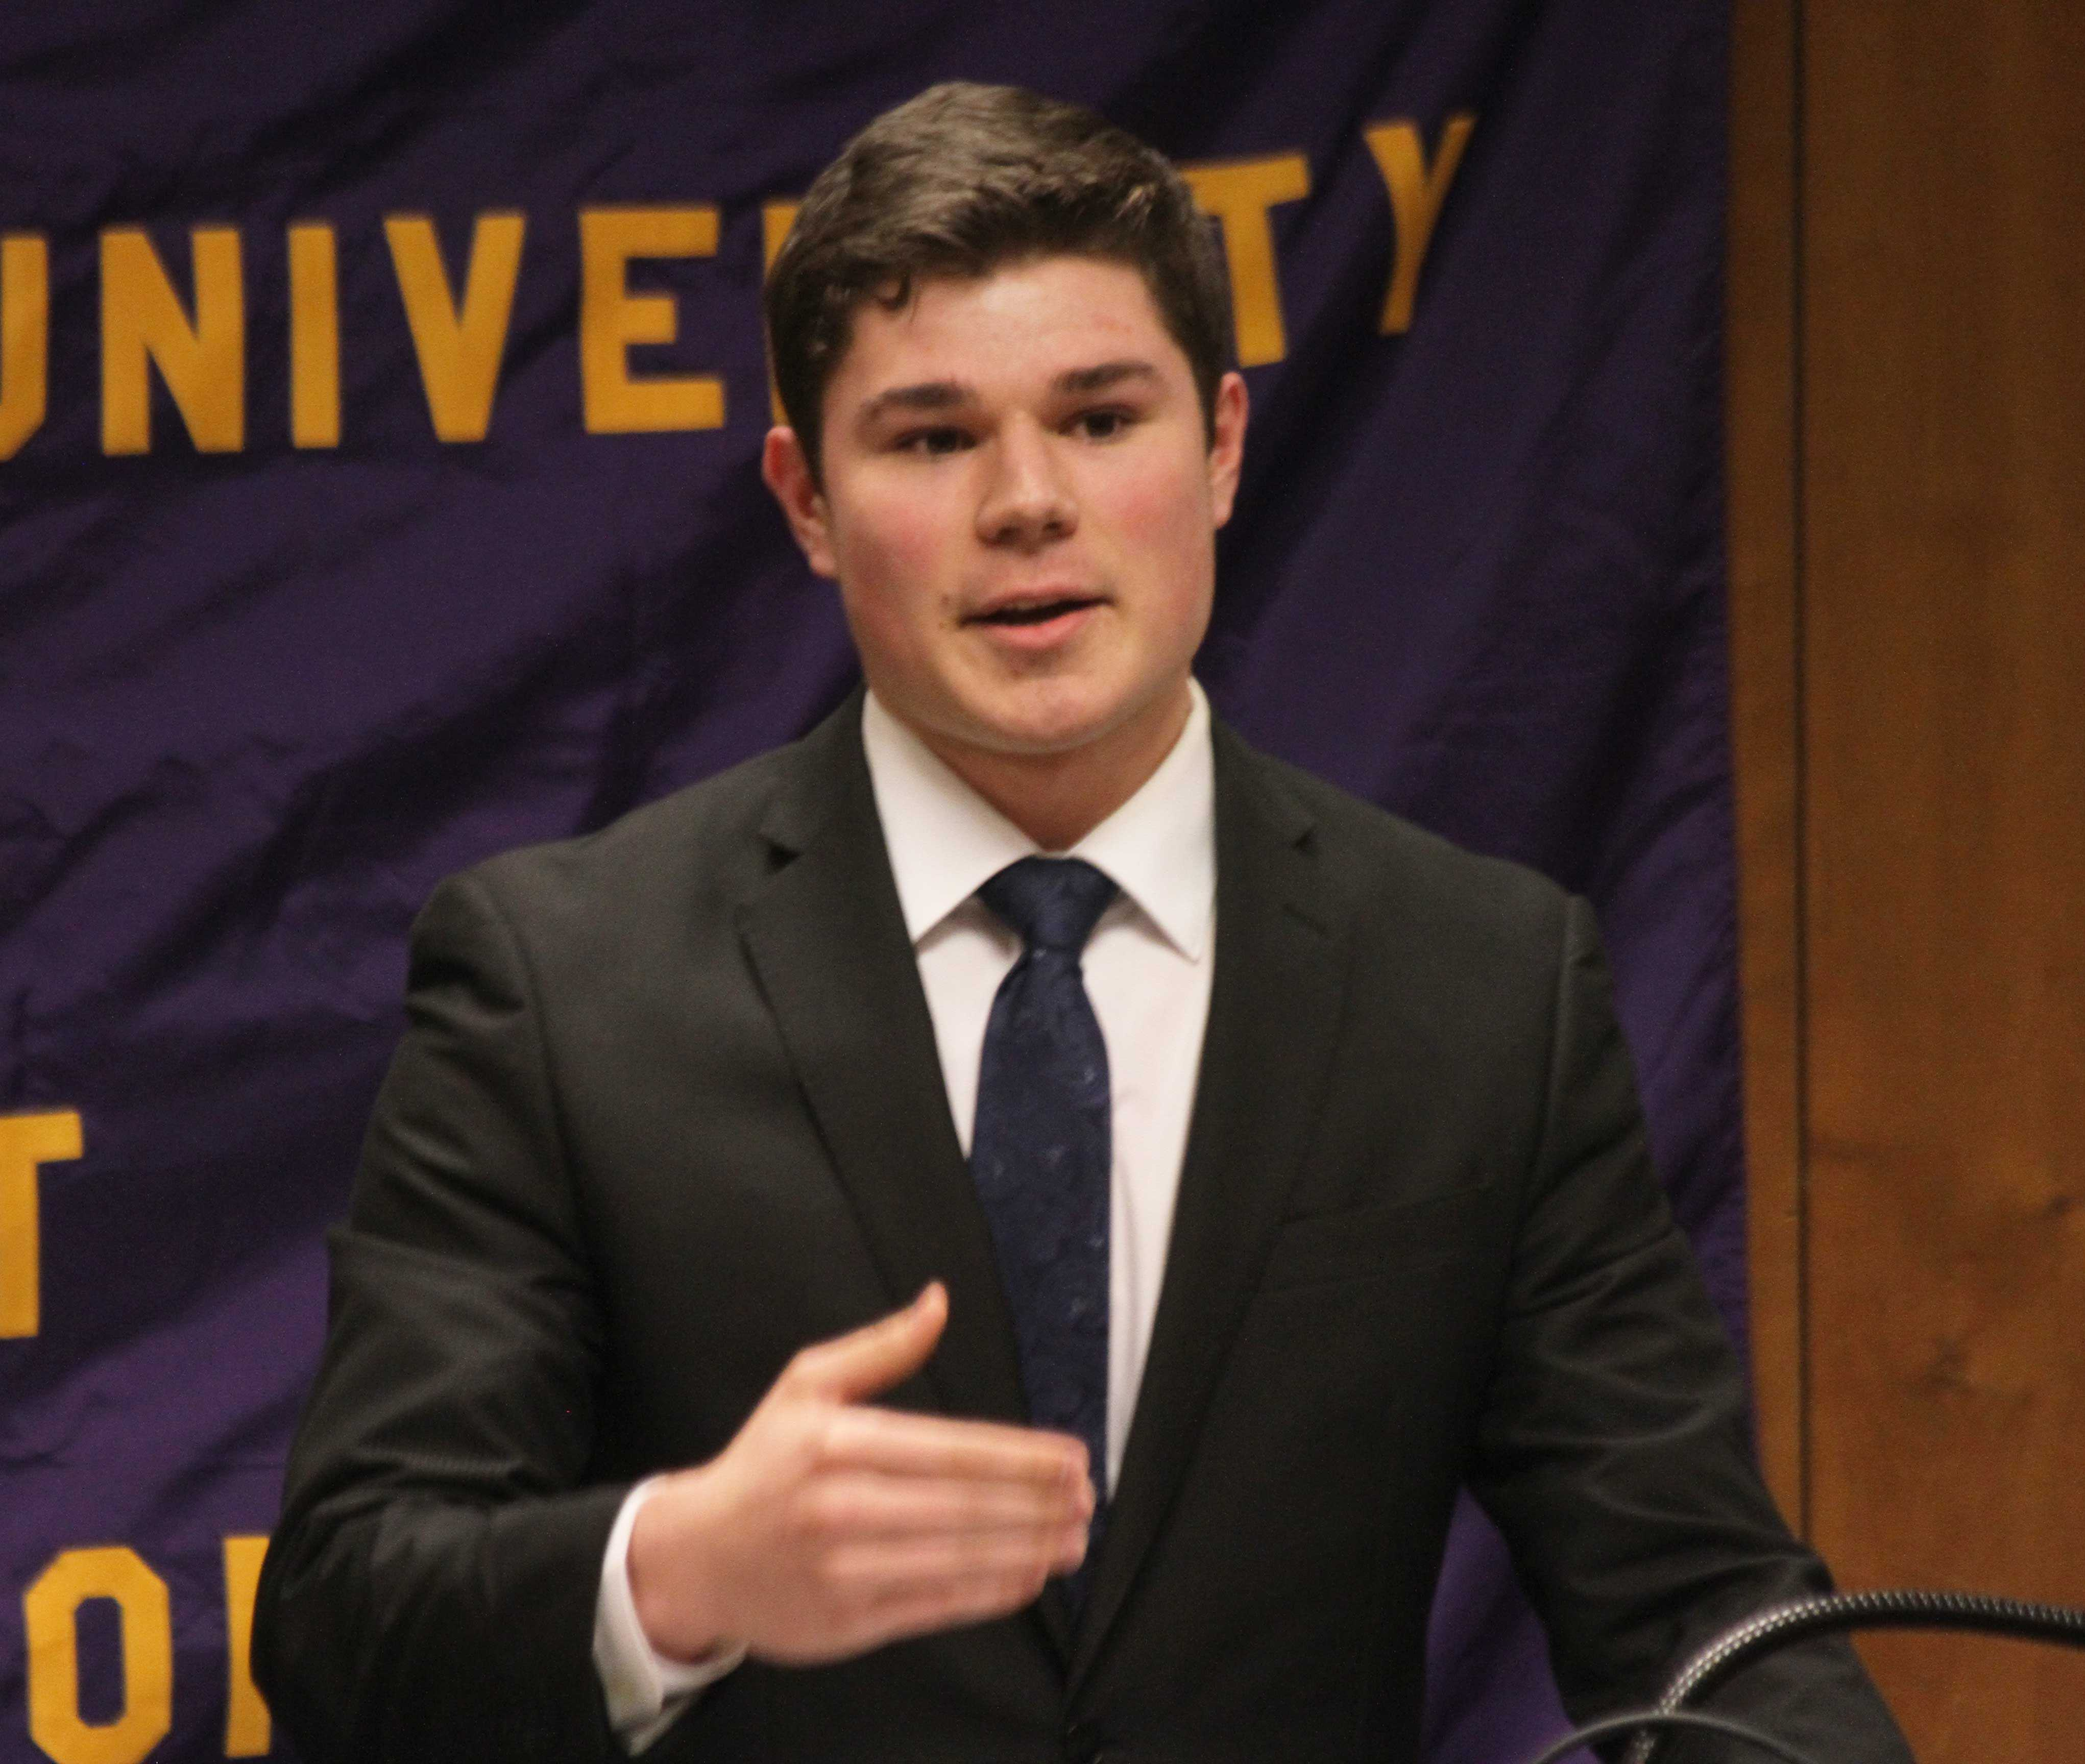 Andrew Mueller is elected to the position of Speaker of the Senate for Student Government Association (SGA) for the 2016-17 school year over opponent John Kennealy. Inter-Hall Council (IHC) senator Maddie Heinzer presents her bill to the floor that asks to extend the GoWest Route 6 Maroon line to 30 minutes after Malpass Library closes.